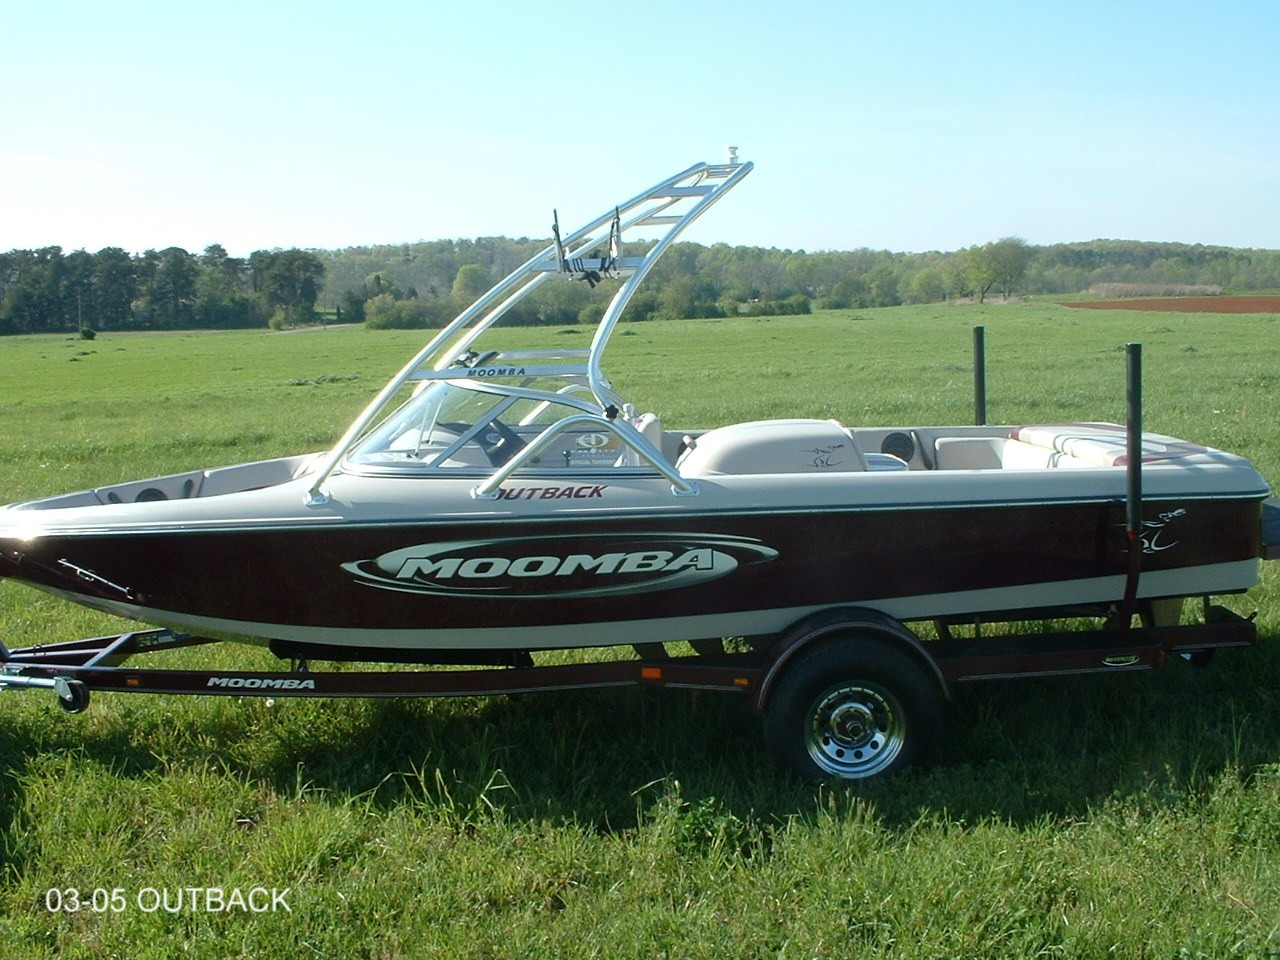 main view of 03 - 05 moomba outback with new dimension towers wakeboard tower